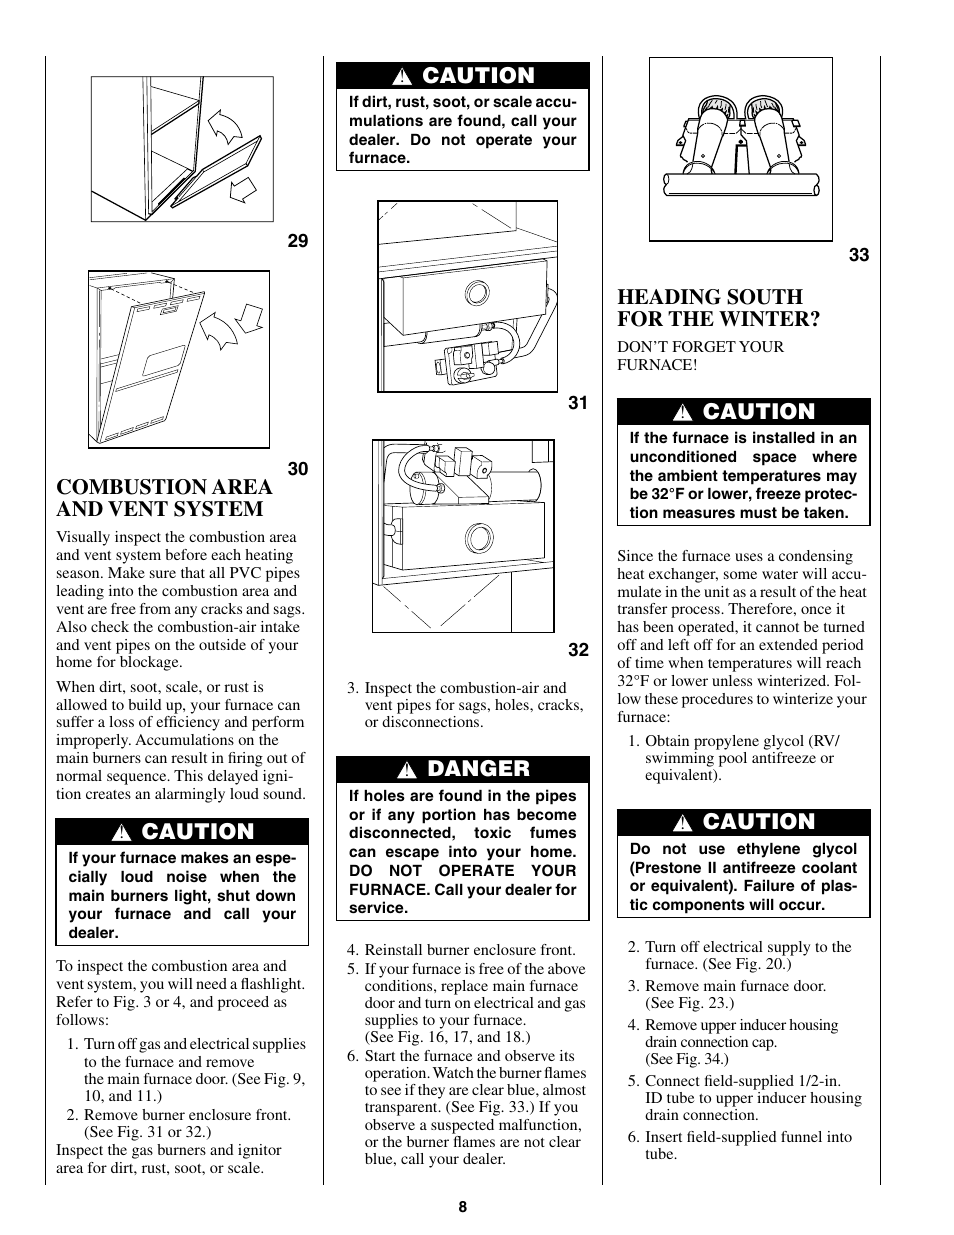 Combustion area and vent system, Caution, Heading south